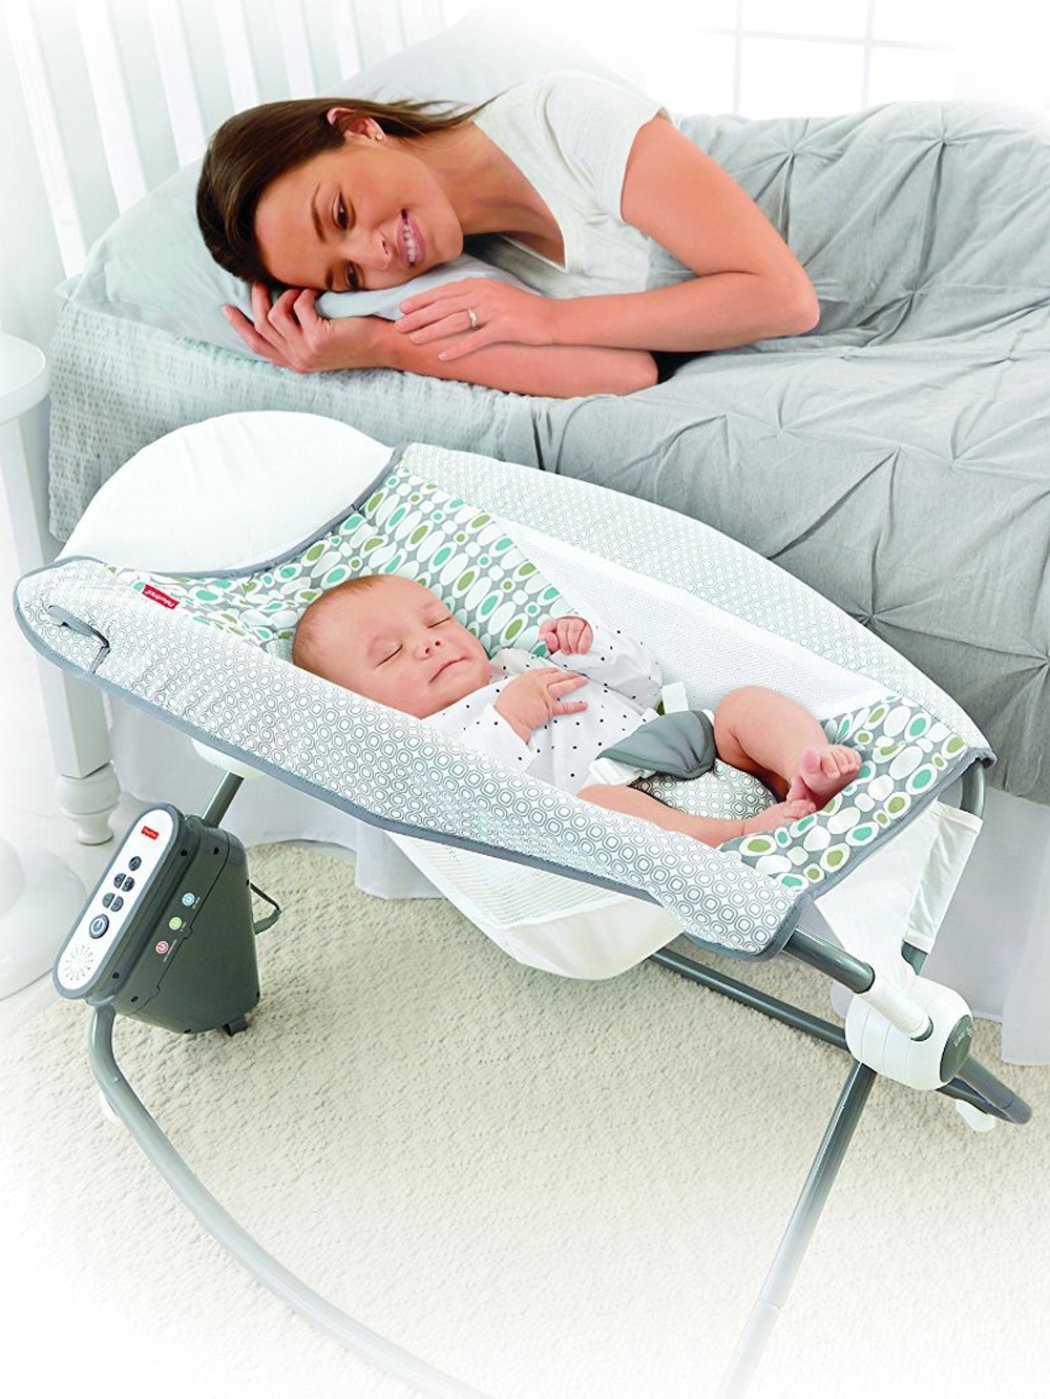 Baby bed that connects to parents bed - Baby Bed That Connects To Parents Bed 27